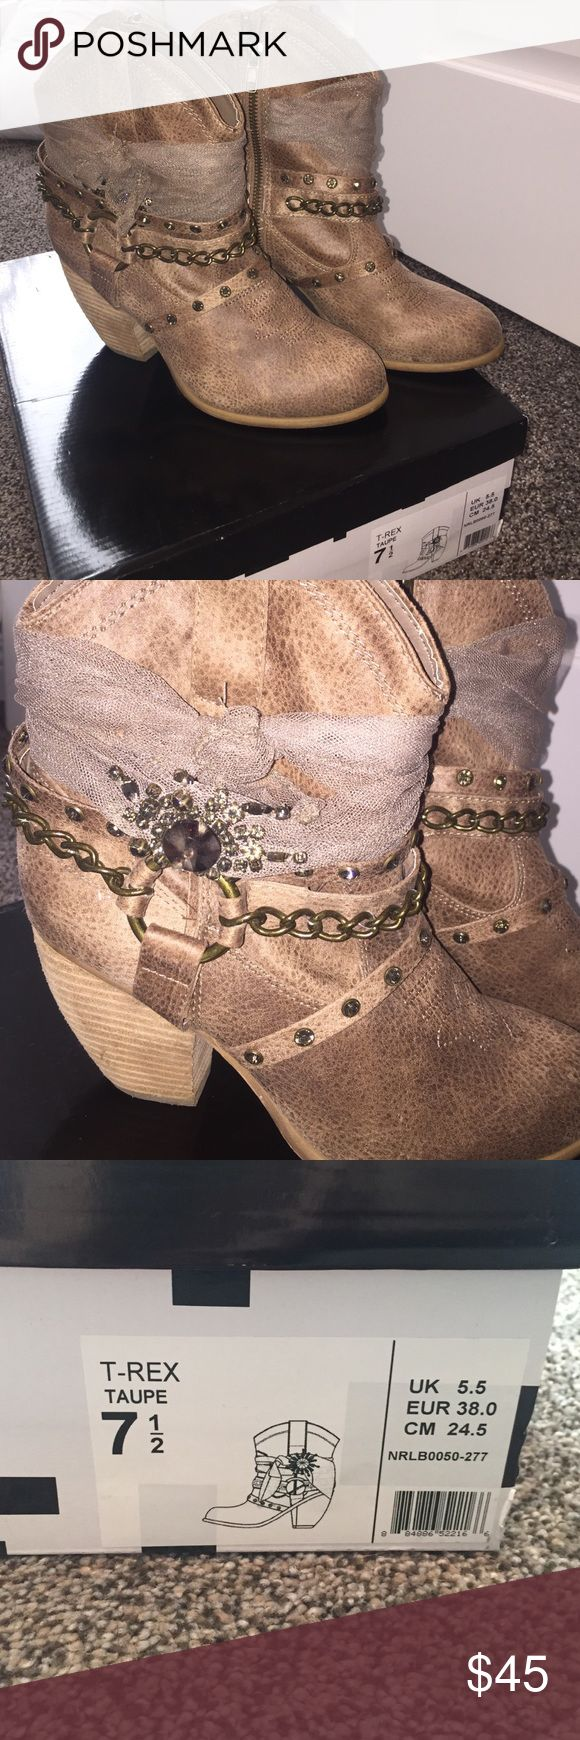 Not Rated Boots Tell boots. Worn once. Minor scuffs. Come in original box. Not Rated Shoes Heeled Boots